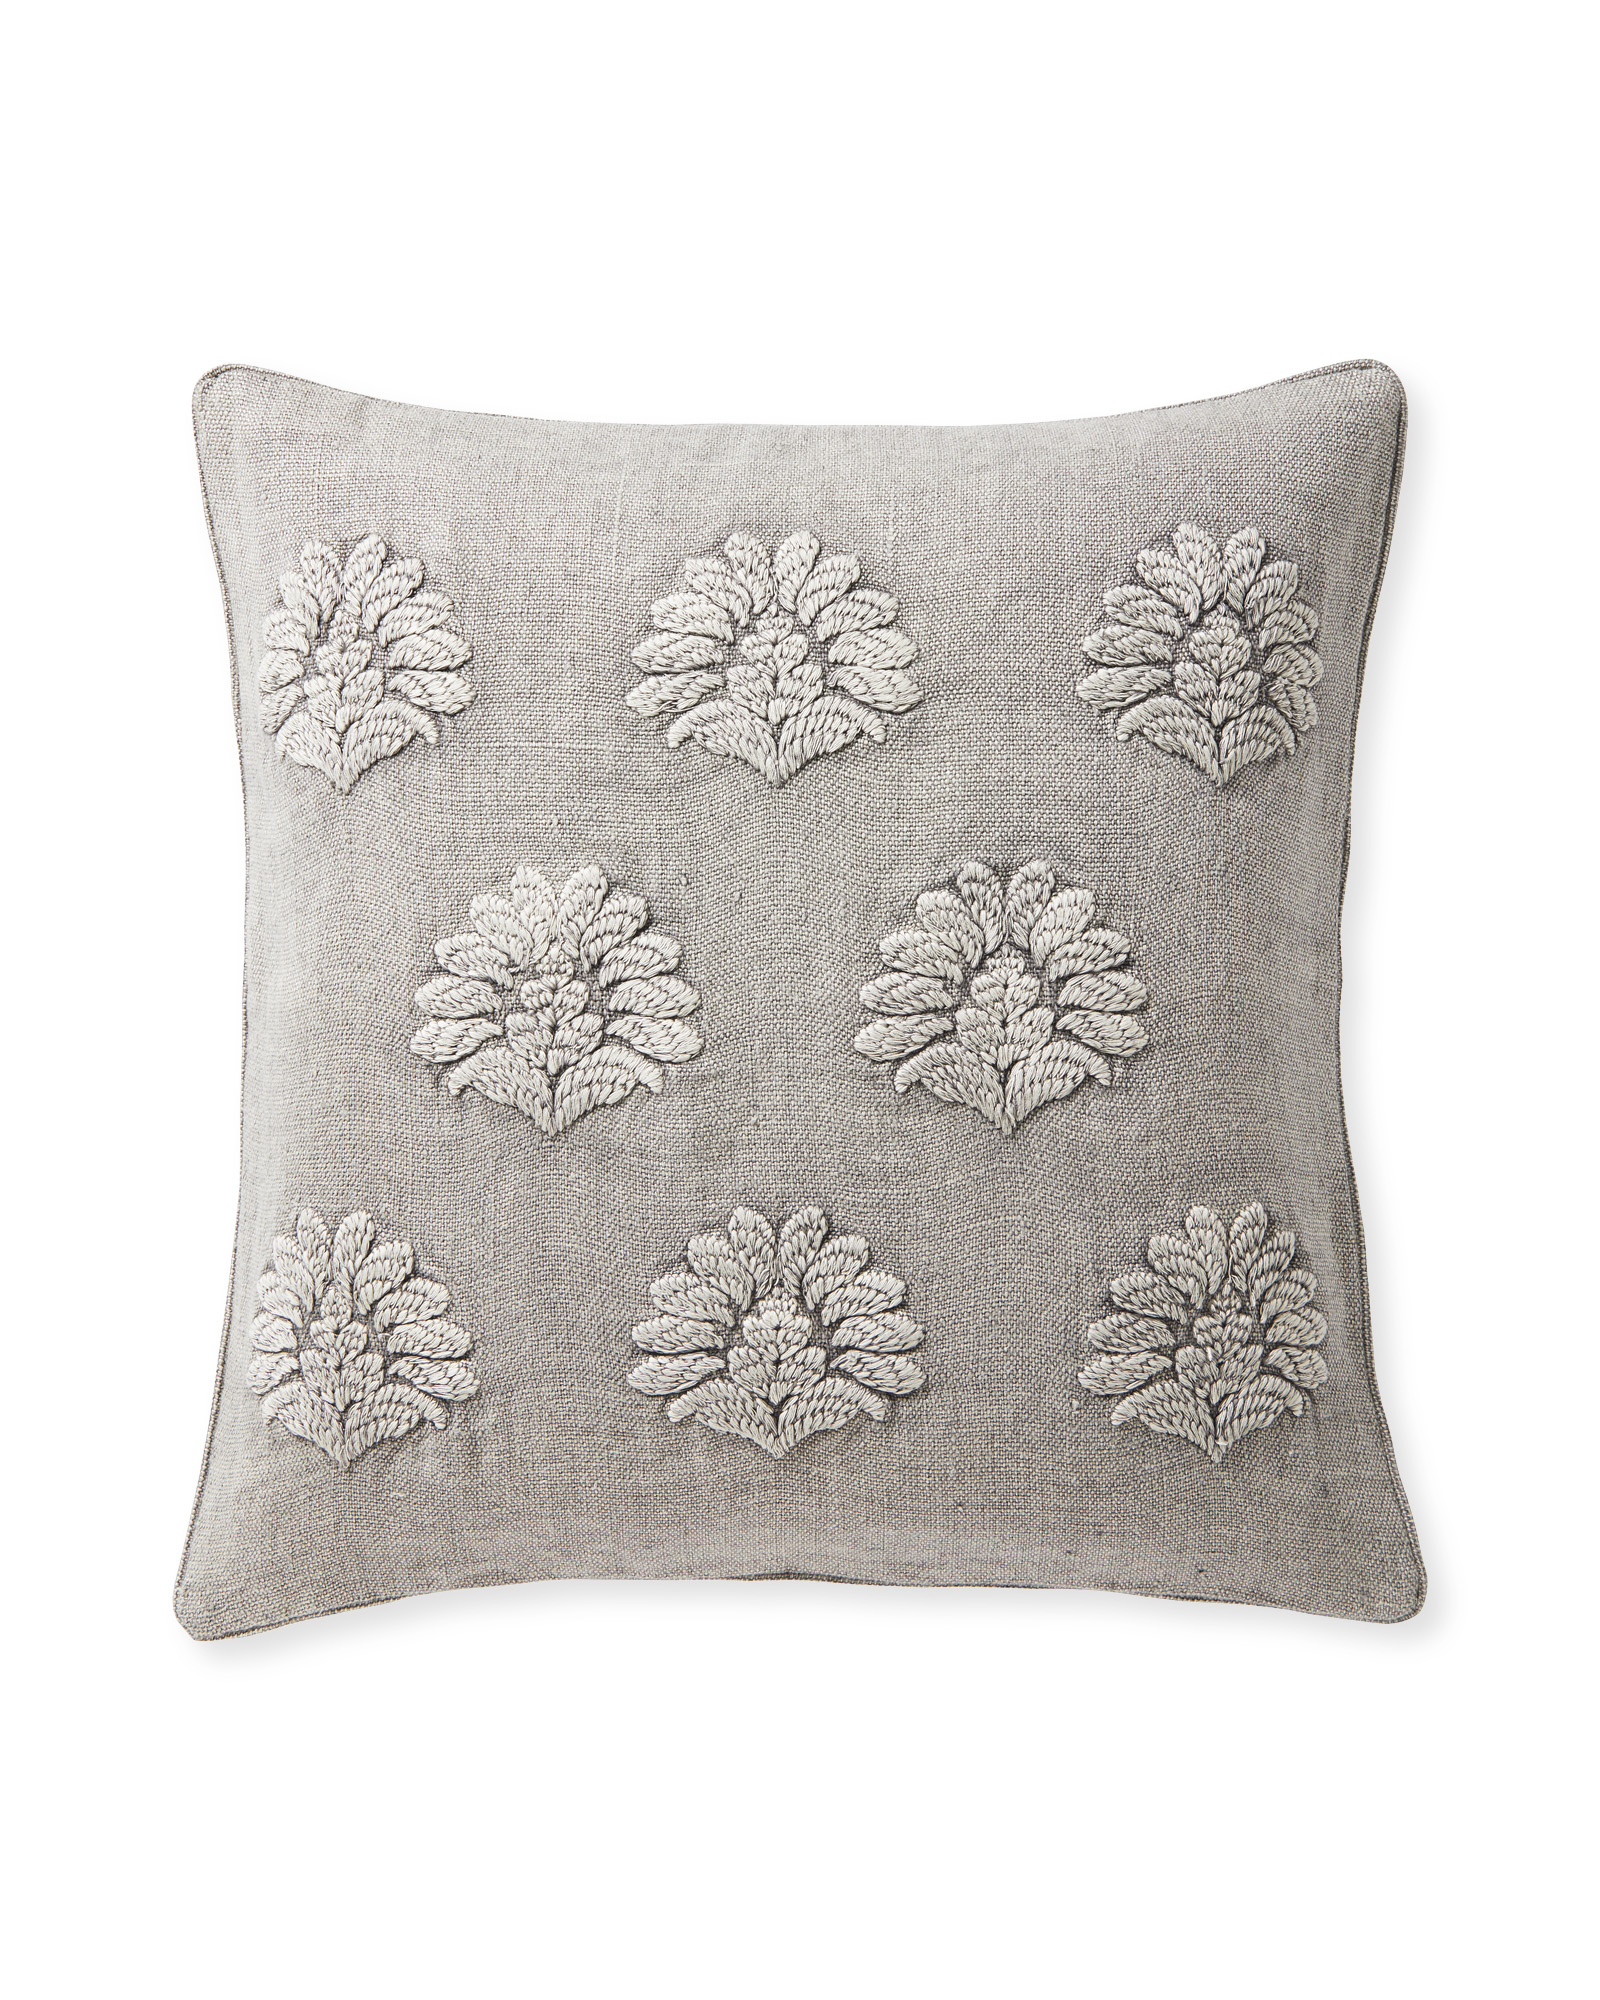 Miramonte Pillow Cover, Smoke